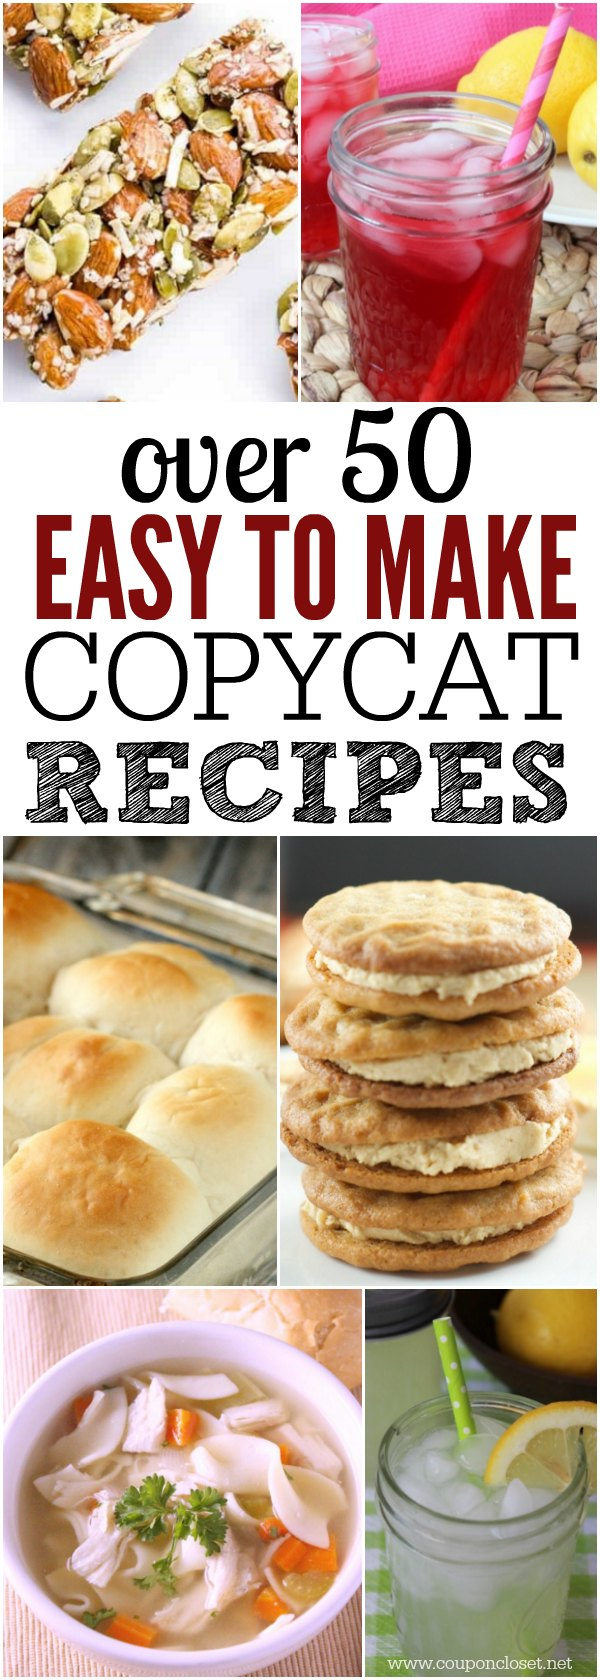 Here are over 50 quick and easy copycat recipes you will love. Try one of the best Restaurant recipes to make at home and save money.